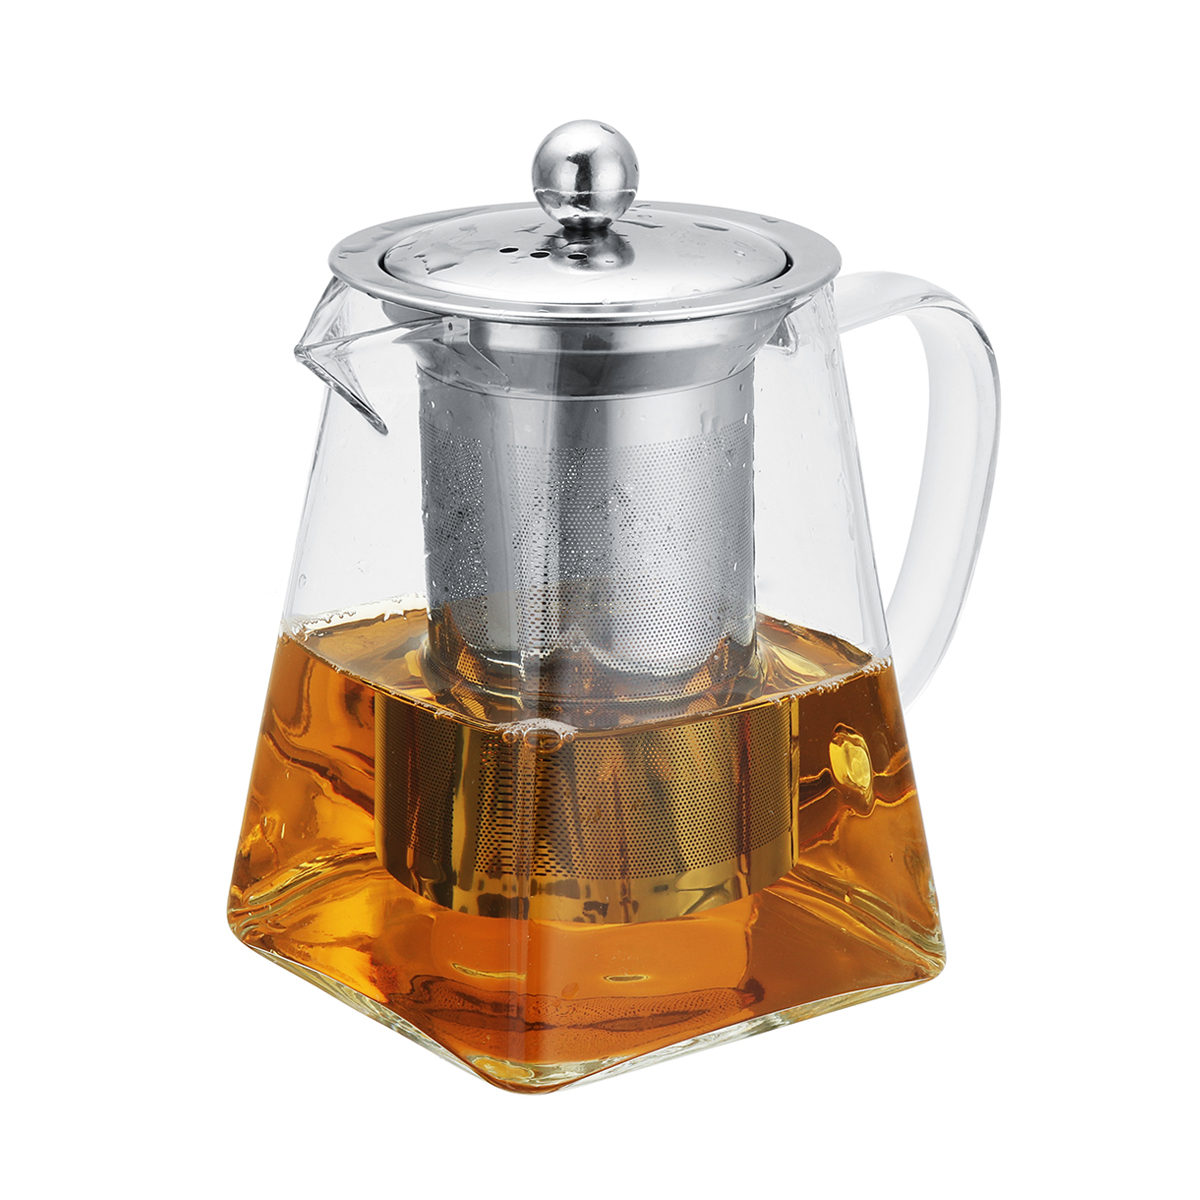 Heat-Resistant-Clear-Glass-Teapot-w-Stainless-Steel-Strainer-Filter-Tea-Infuser